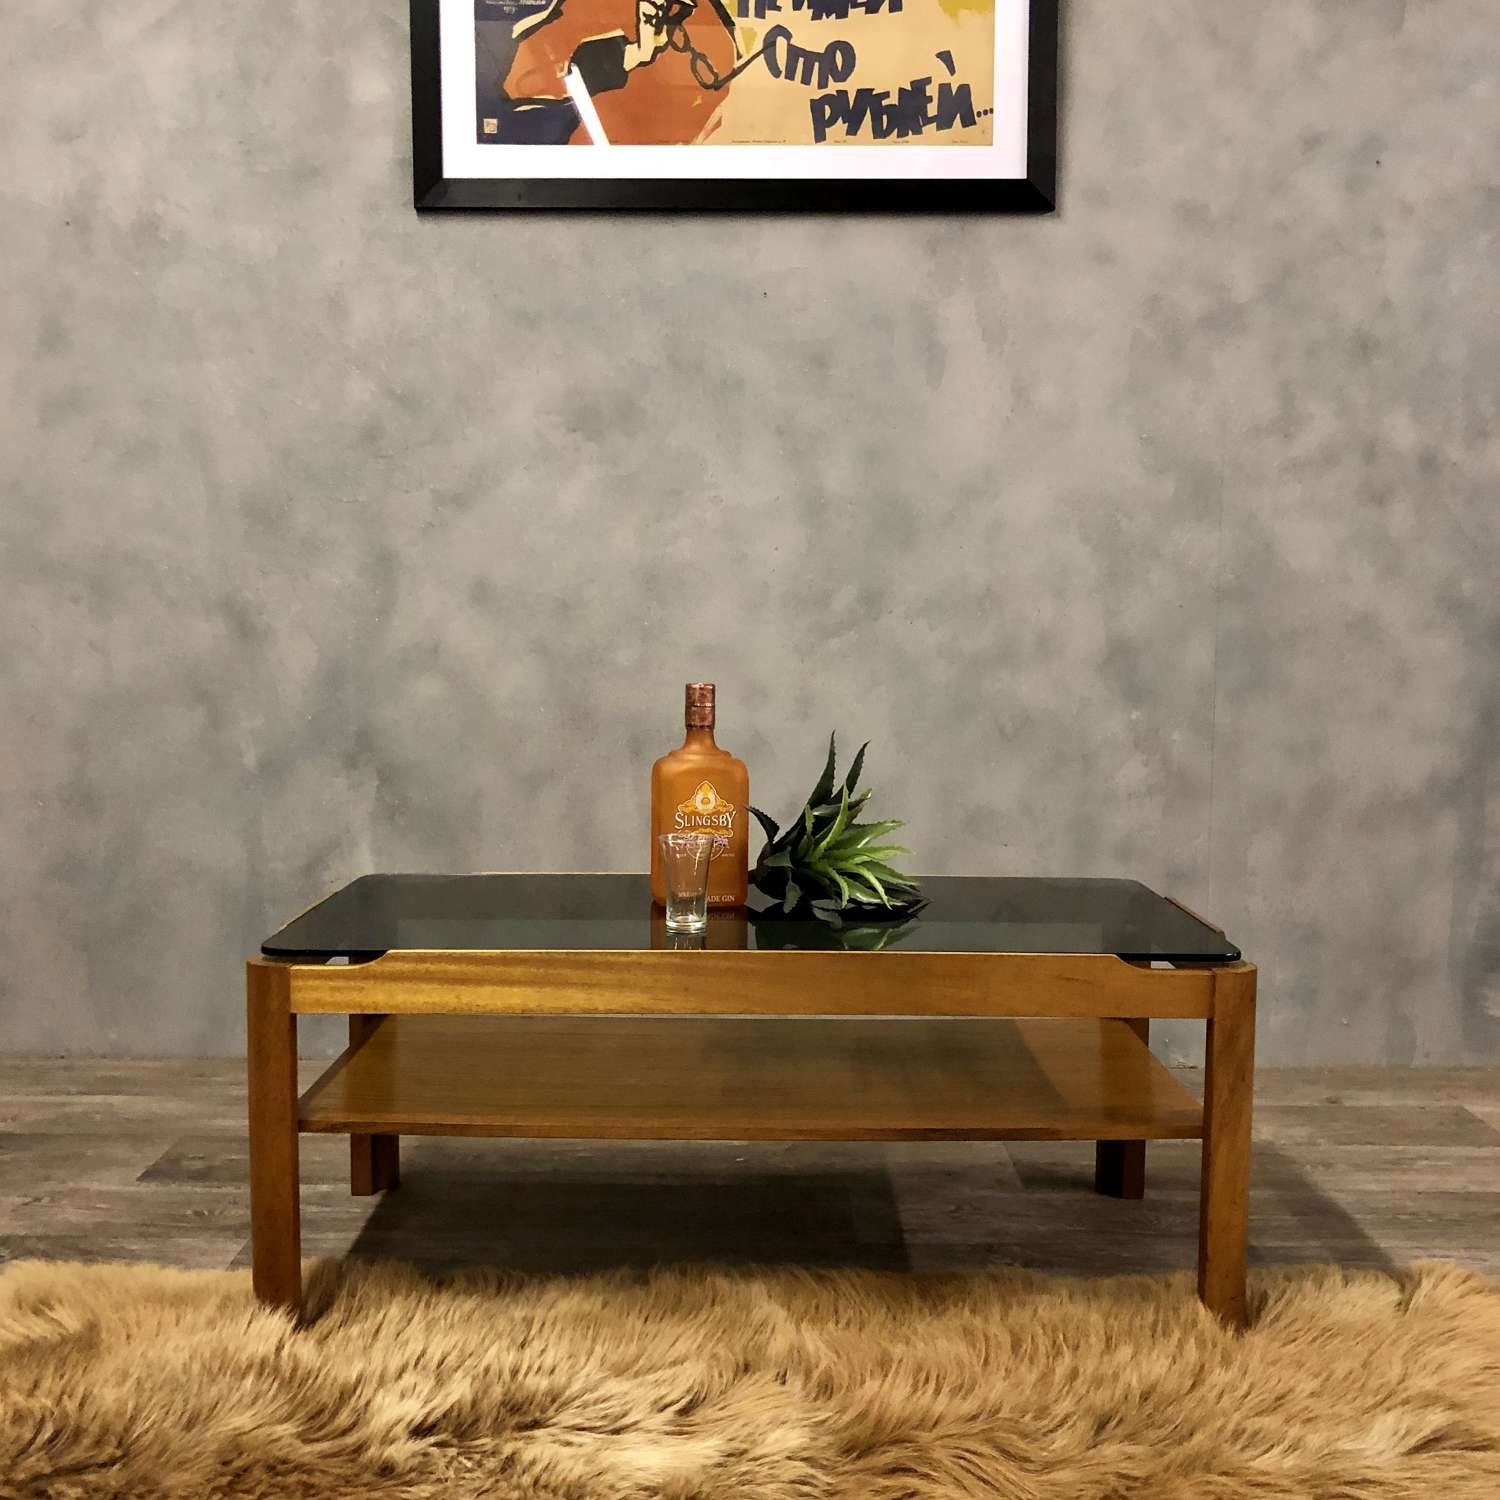 Midcentury smoked glass coffee table by Myer